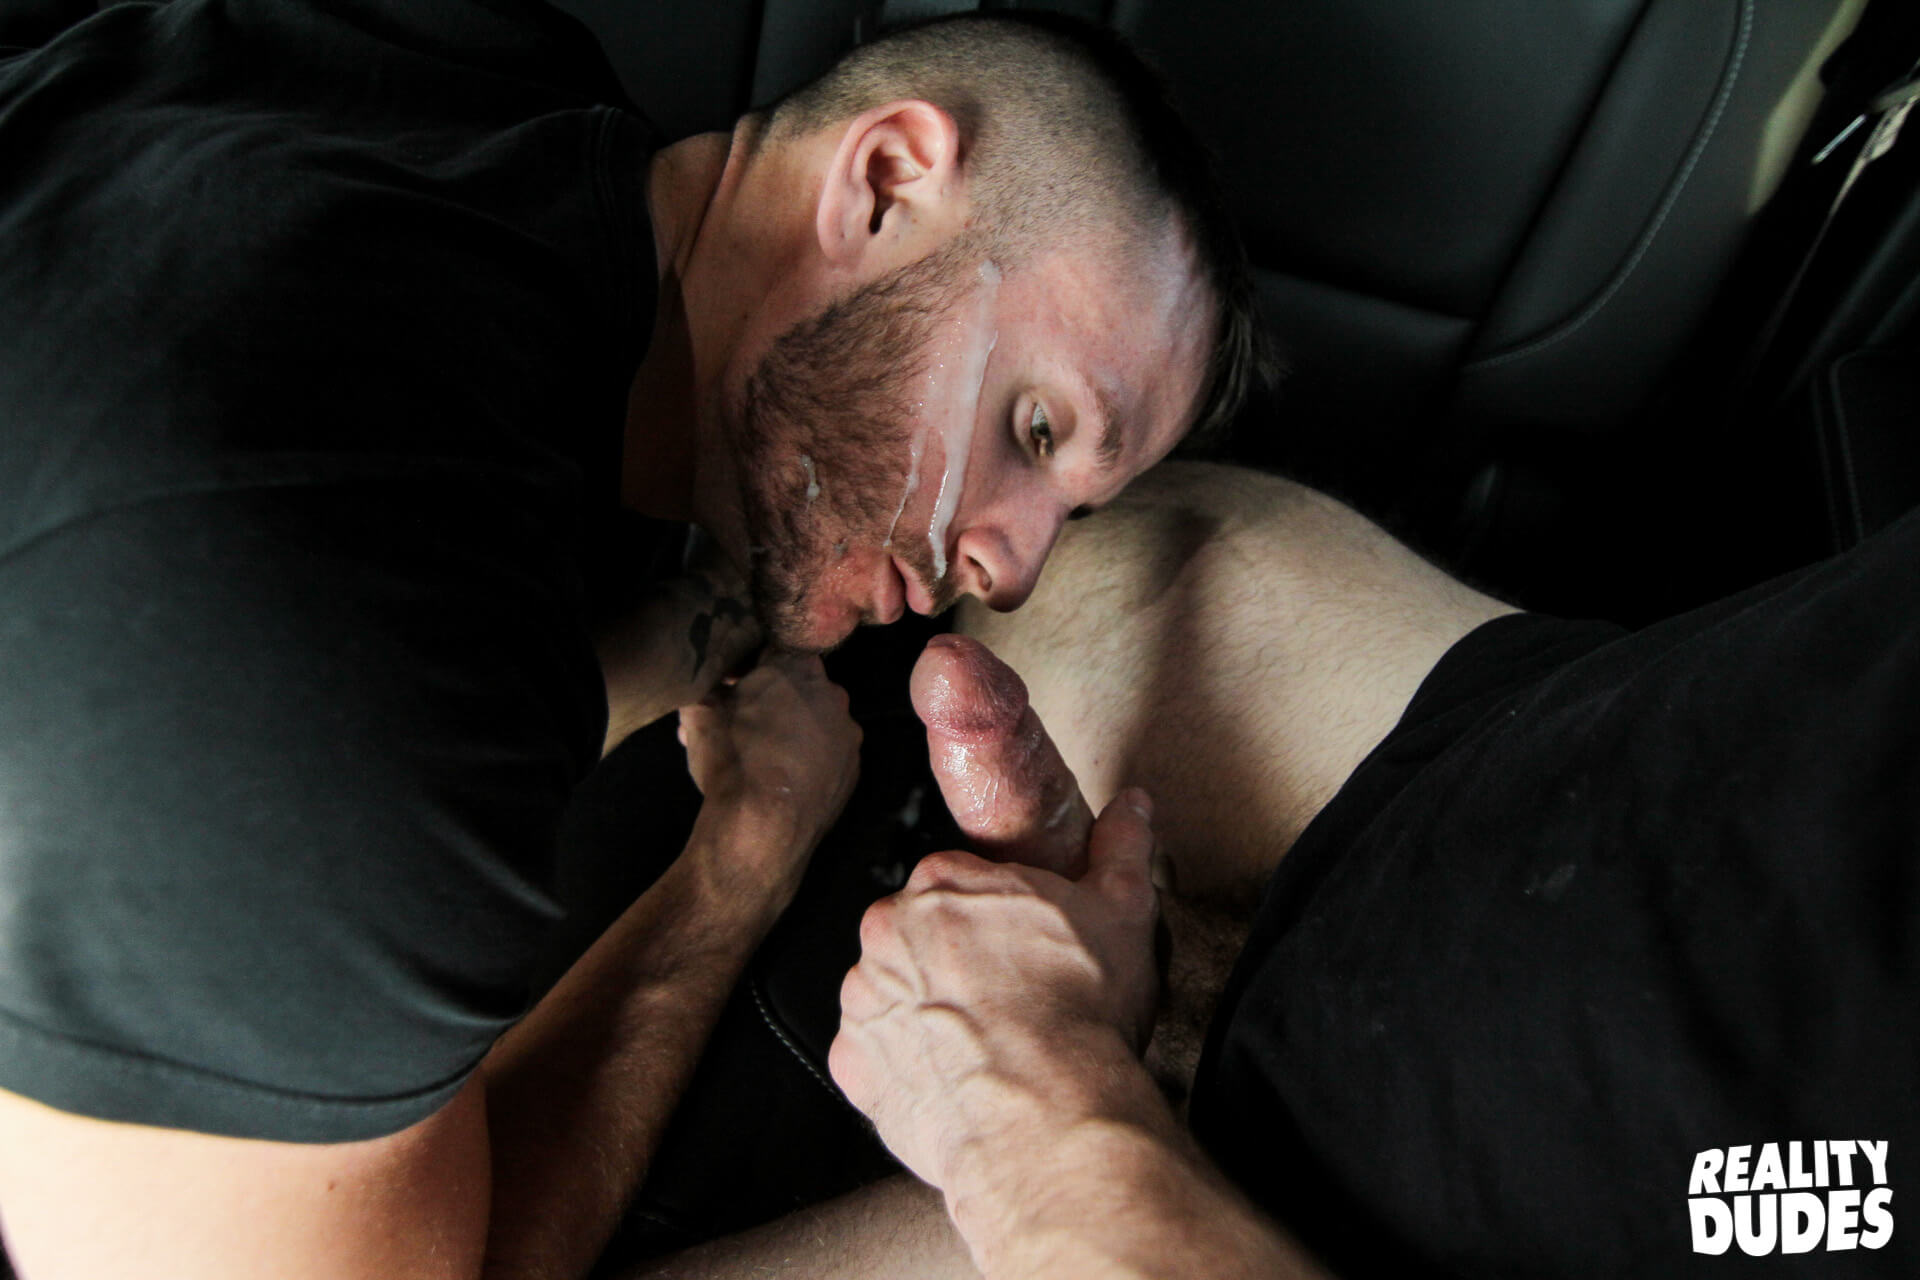 reality dudes str8 chaser matt gay porn blog image 47